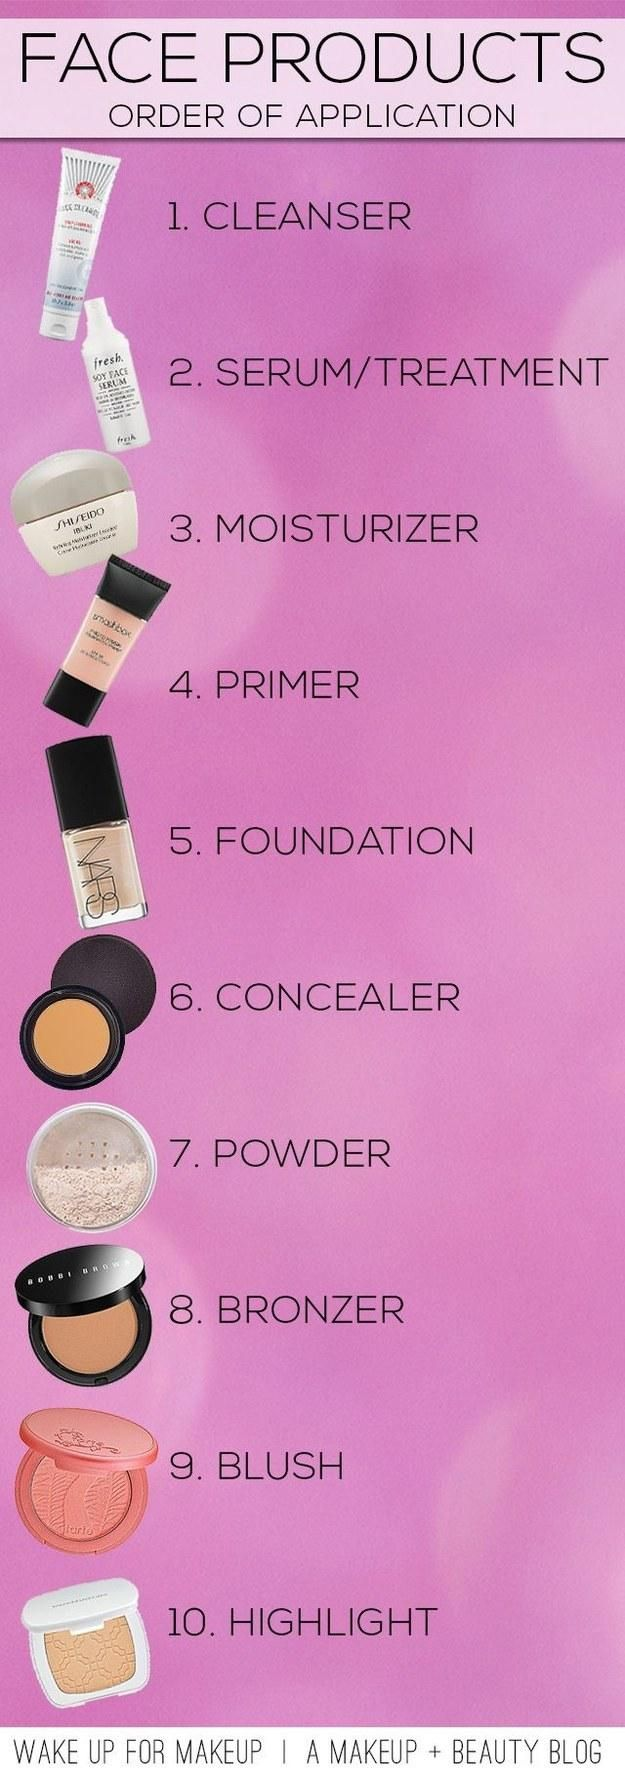 The beginner's guide to applying makeup, good to have no matter what your skill level.